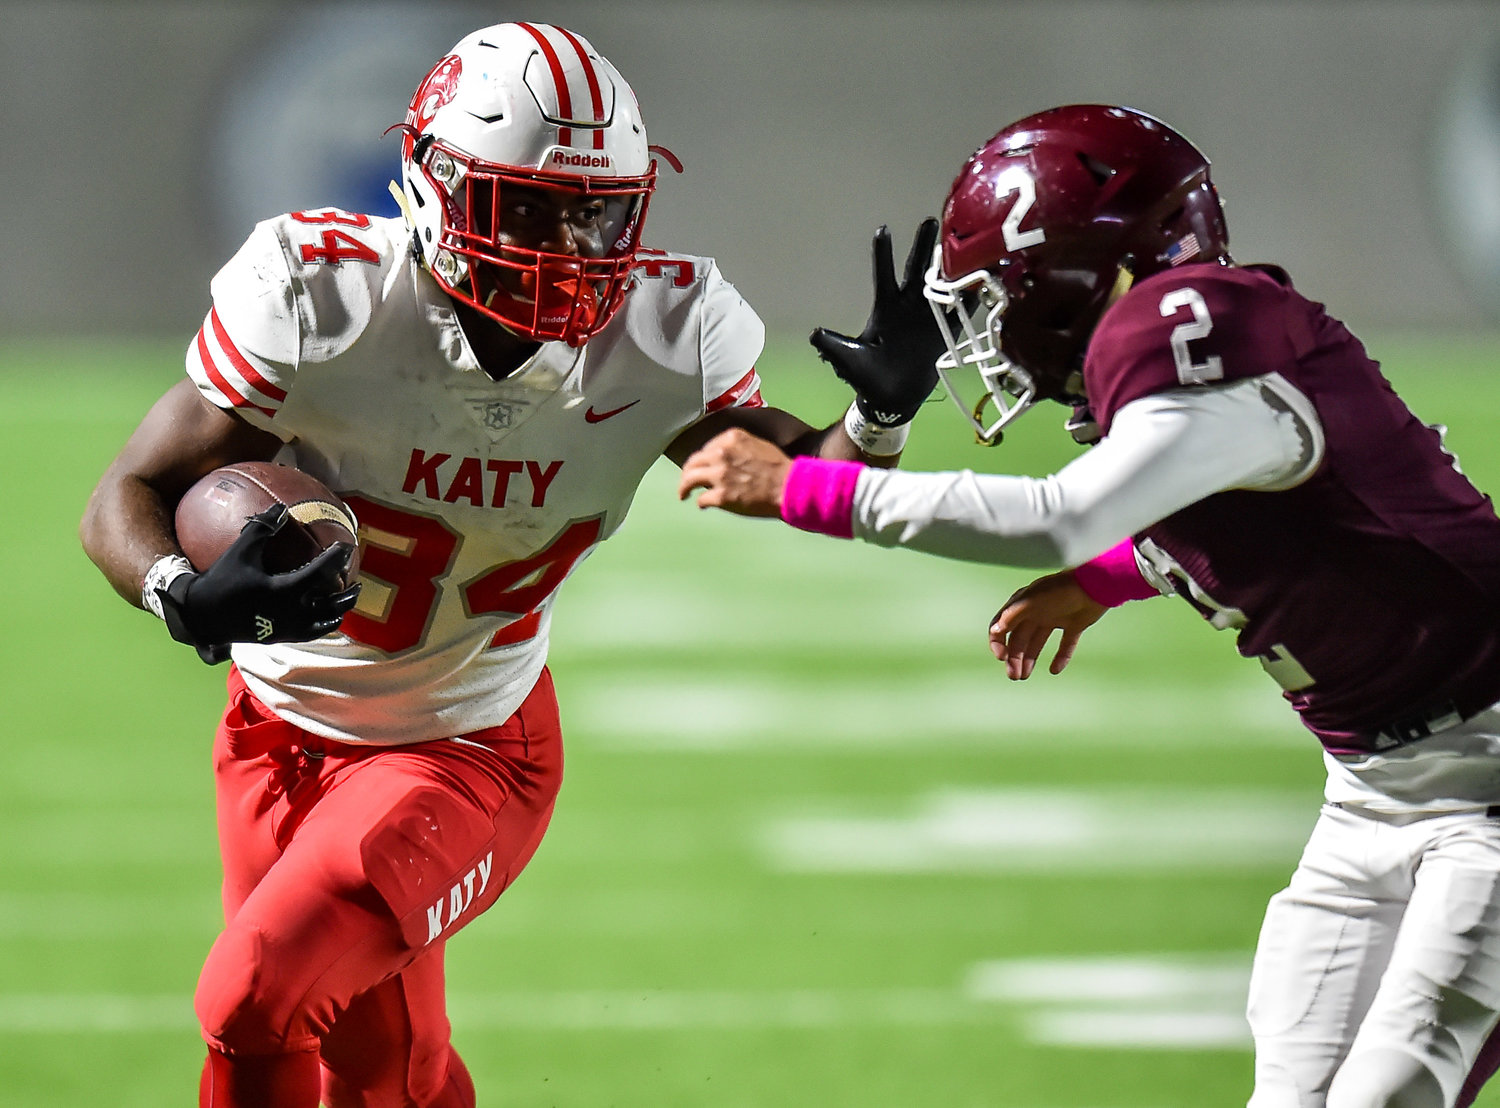 Katy, Tx. Oct. 25, 2019: Katy's Ronald Hoff (34) carries the ball as Cinco Ranch's Carson King (2) attempts to make the stop during a conference game between Katy Tigers and Cinco Ranch Cougars at Legacy Stadium. (Photo by Mark Goodman / Katy Times)